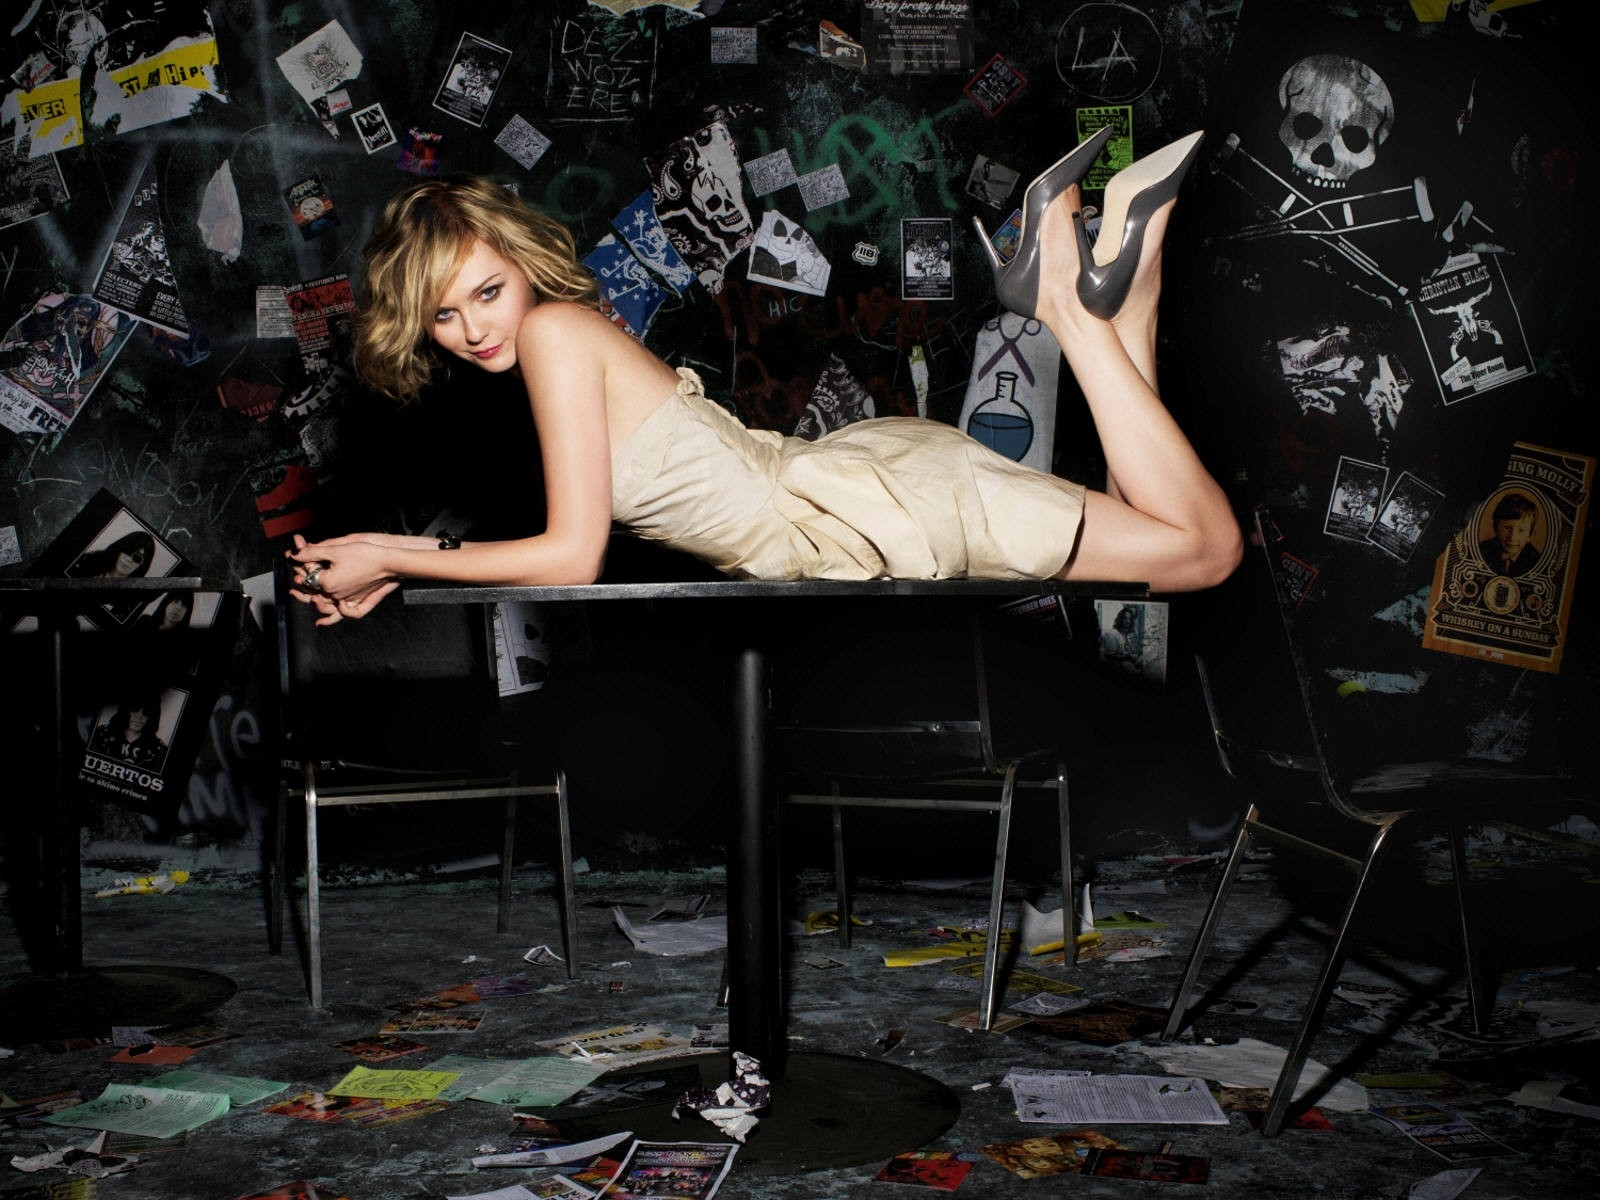 Wallpaper di Kirsten Dunst su un piano